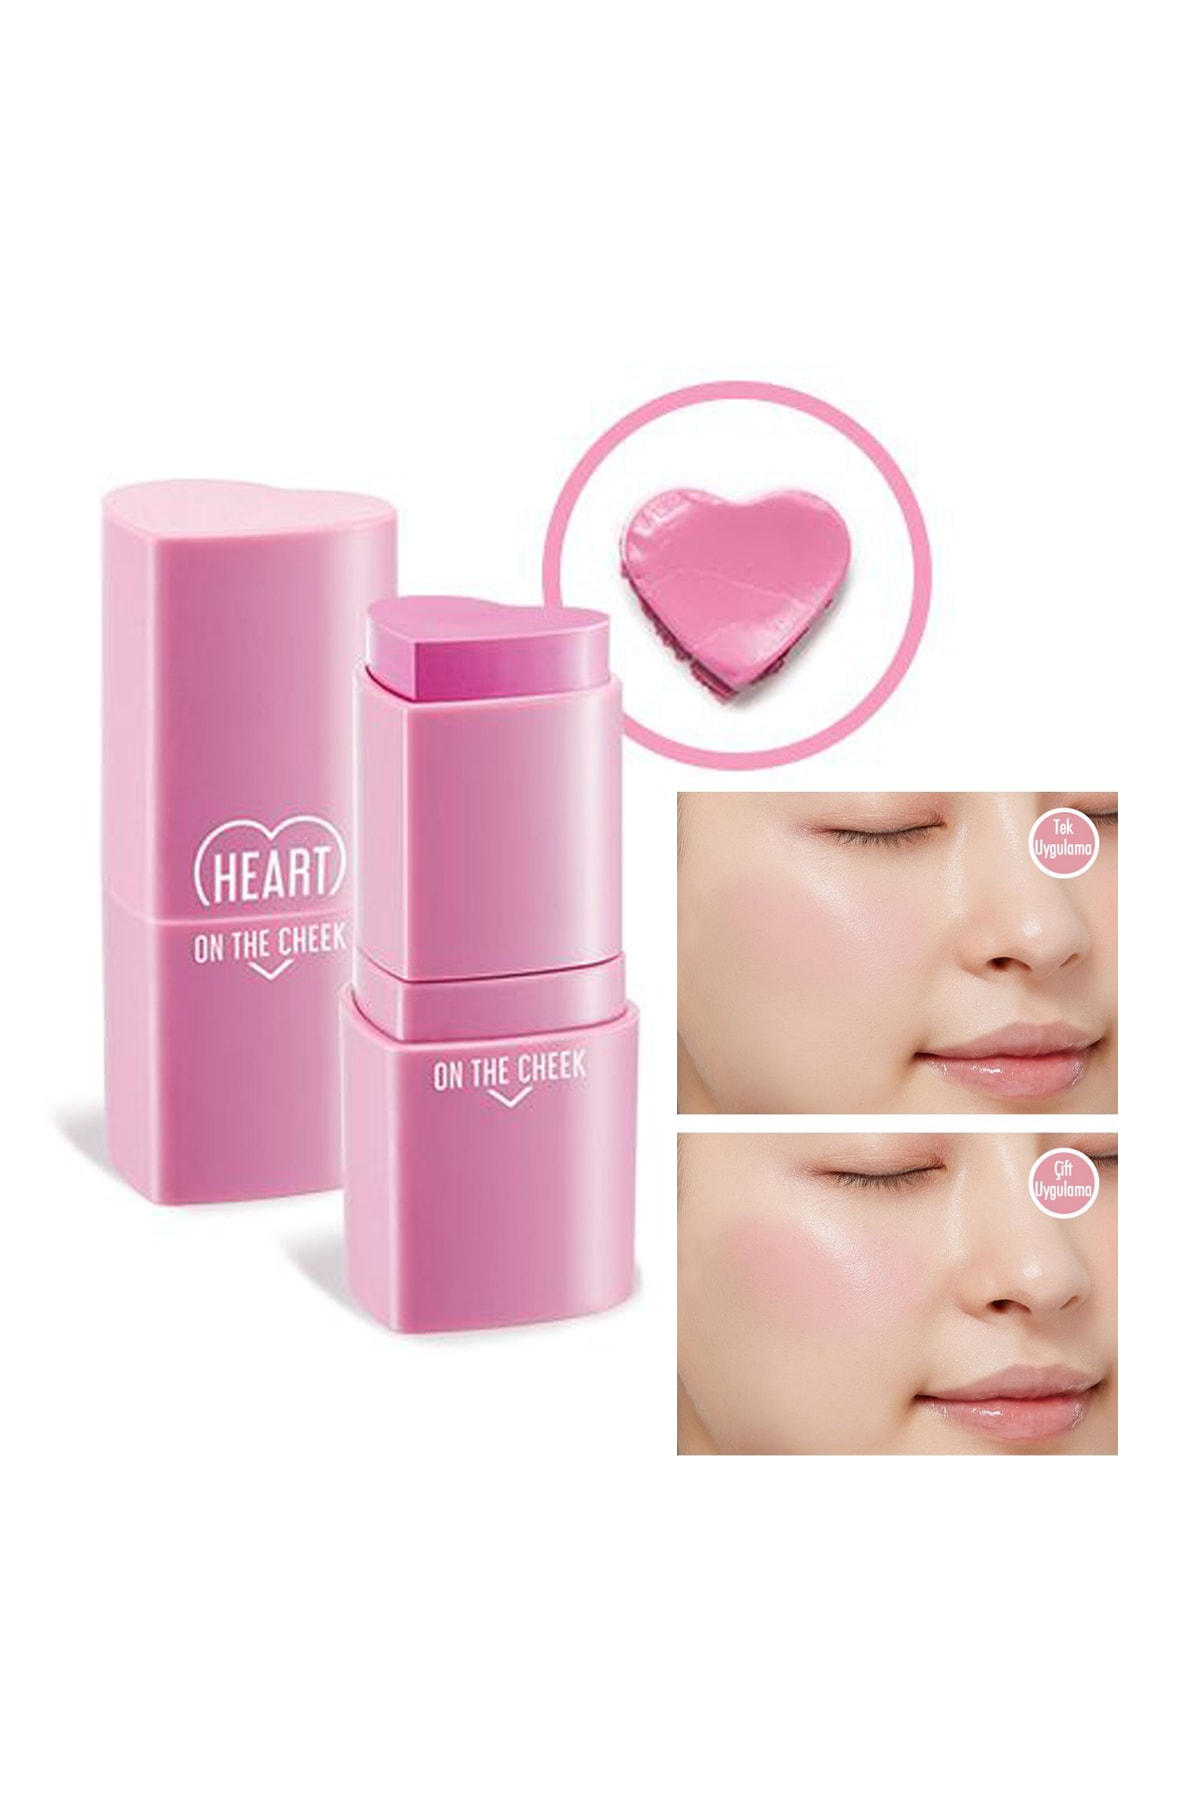 Missha Nemli Yapıda Stick Kalp Allık APIEU Heart On The Cheek (VL01/TMI)